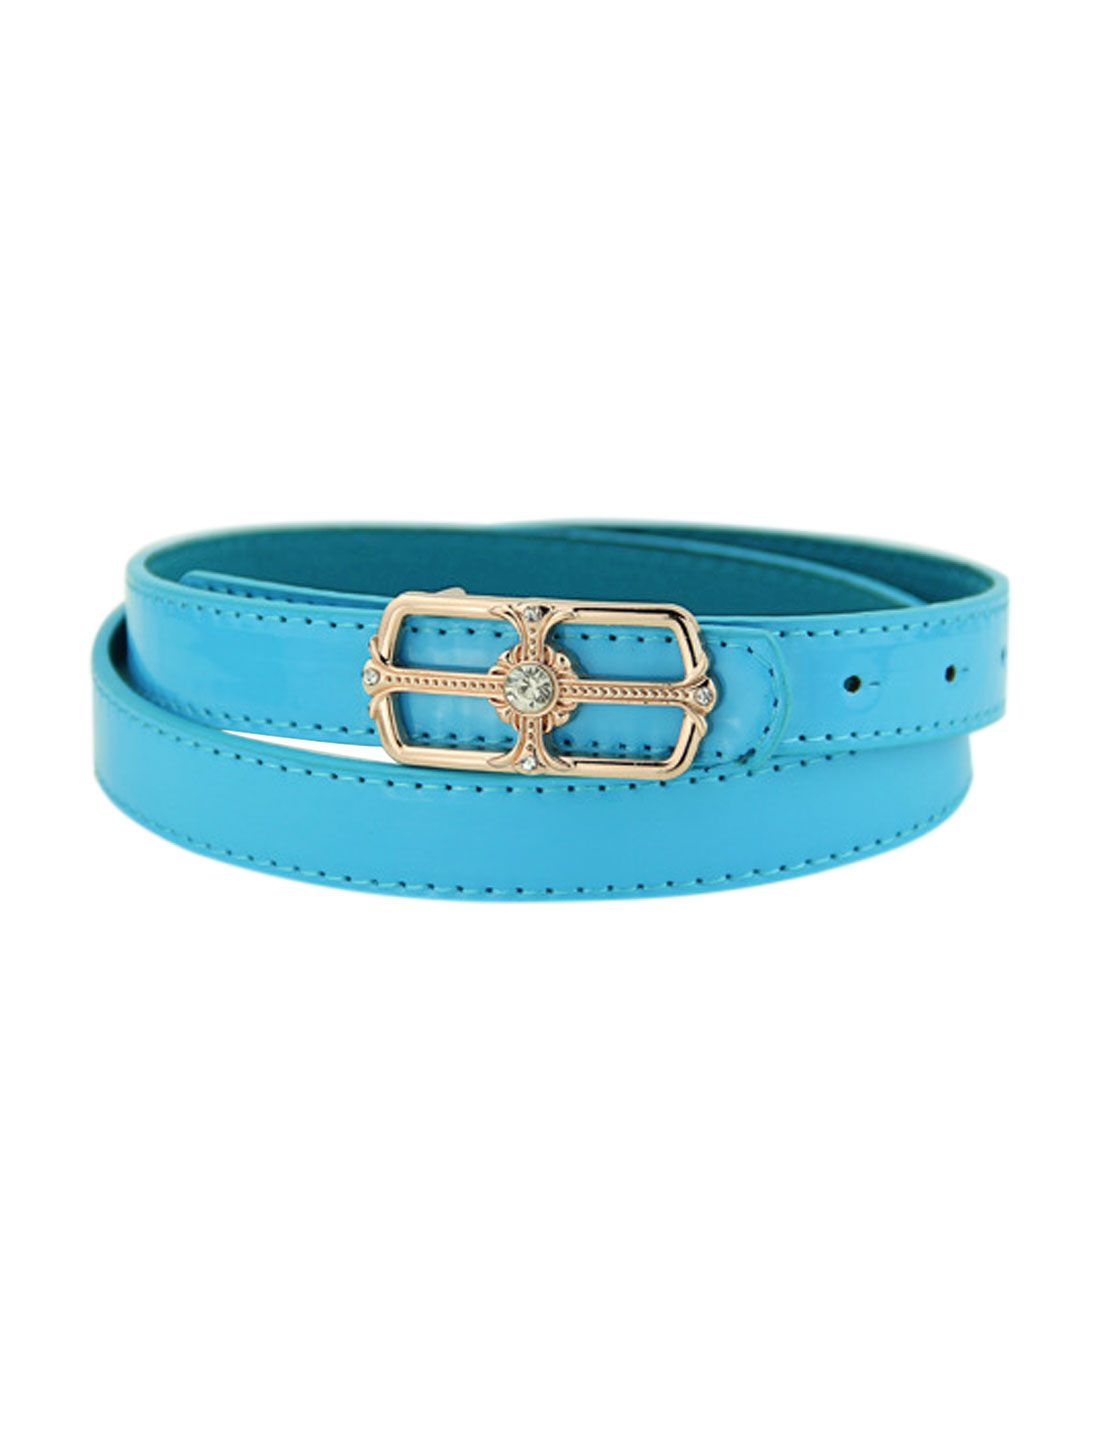 Women Rhinestone Decor Square Press Buckle PU Skinny Belt Blue